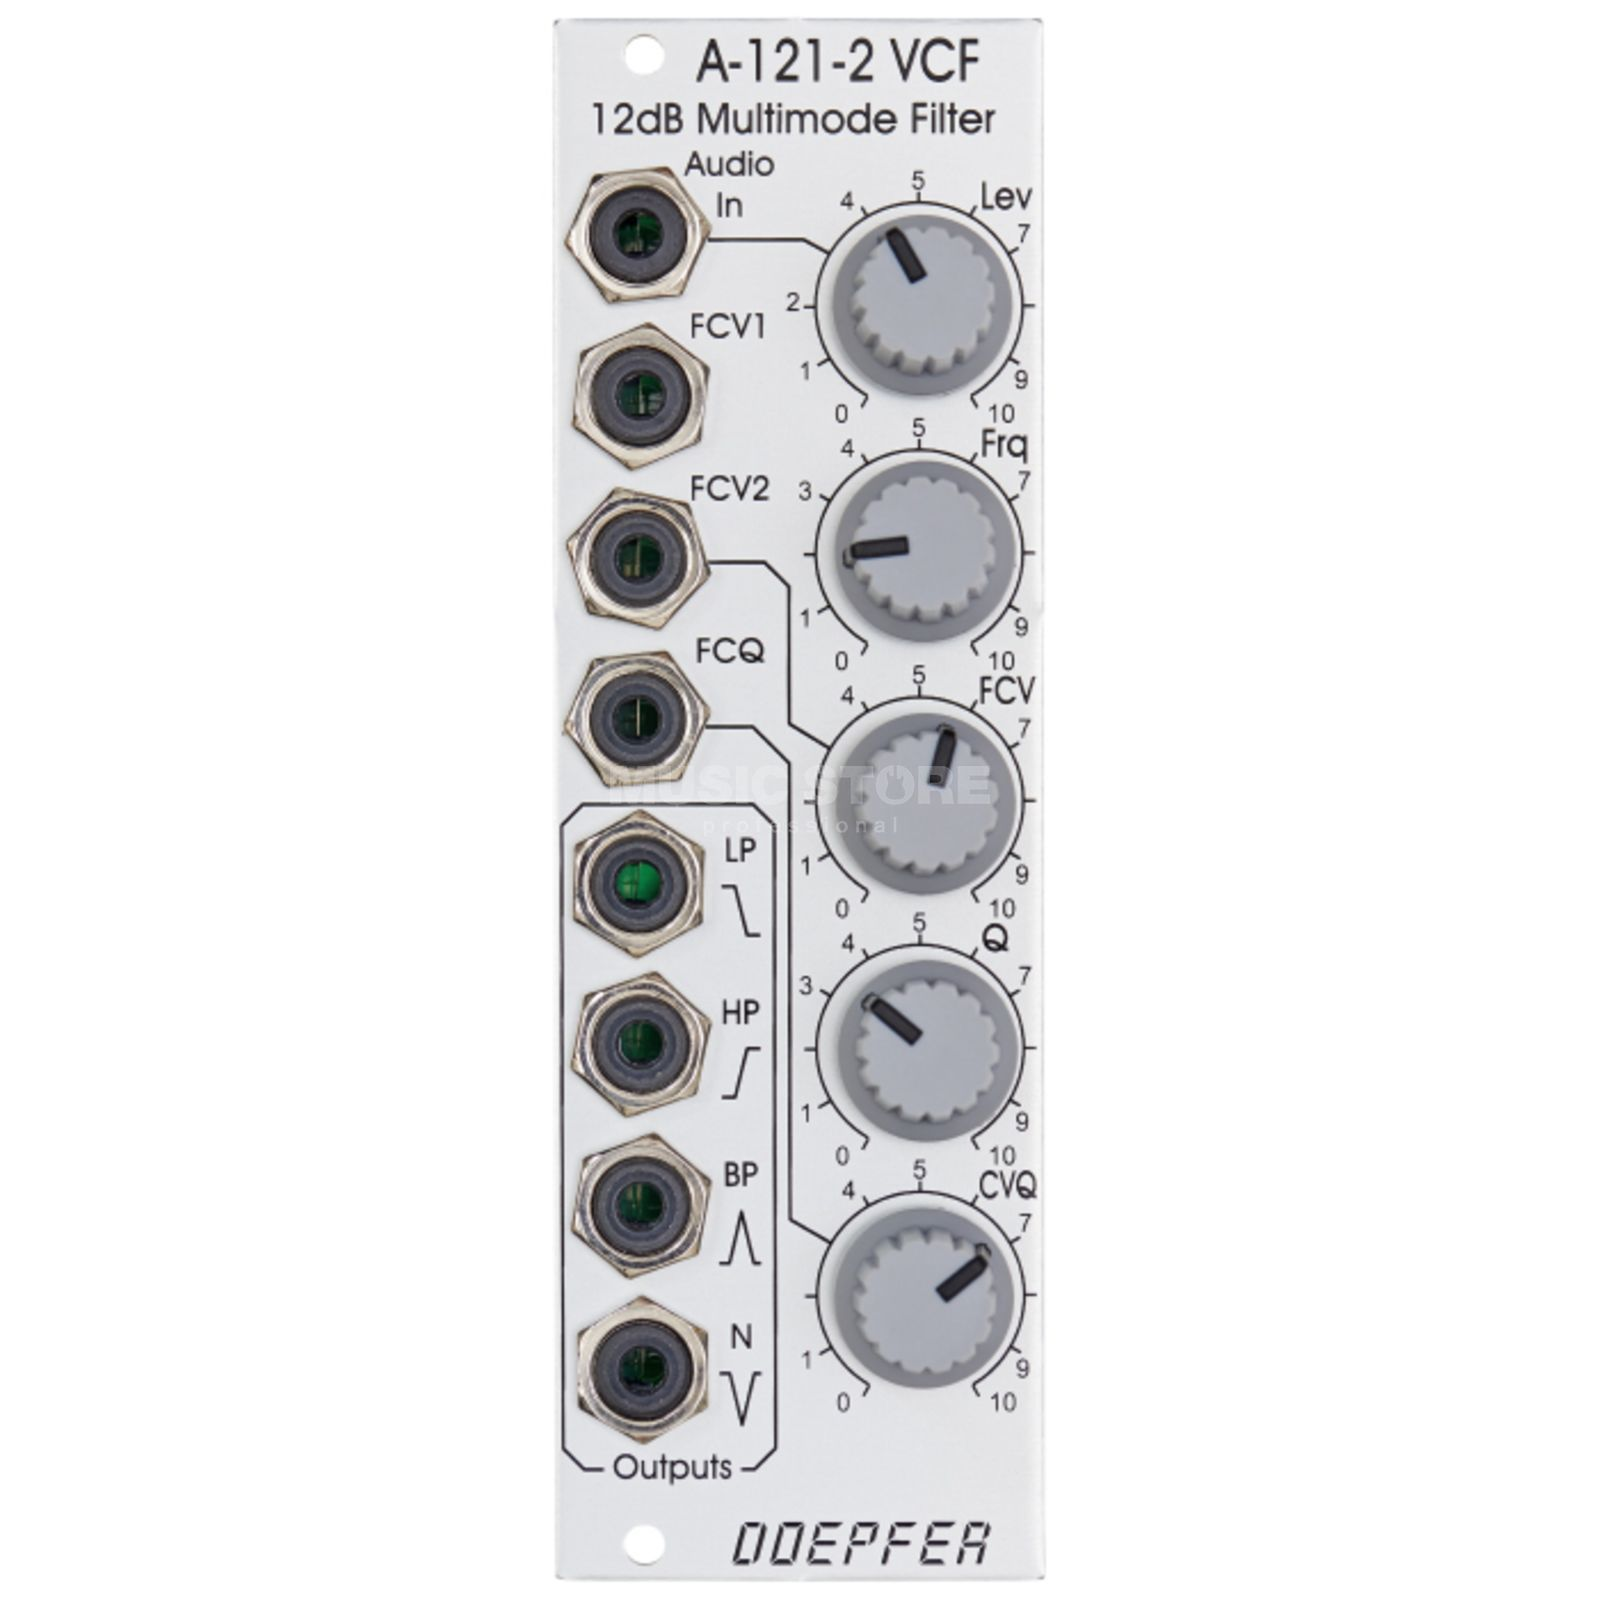 Doepfer A-121V 12dB Multimode Filter Product Image